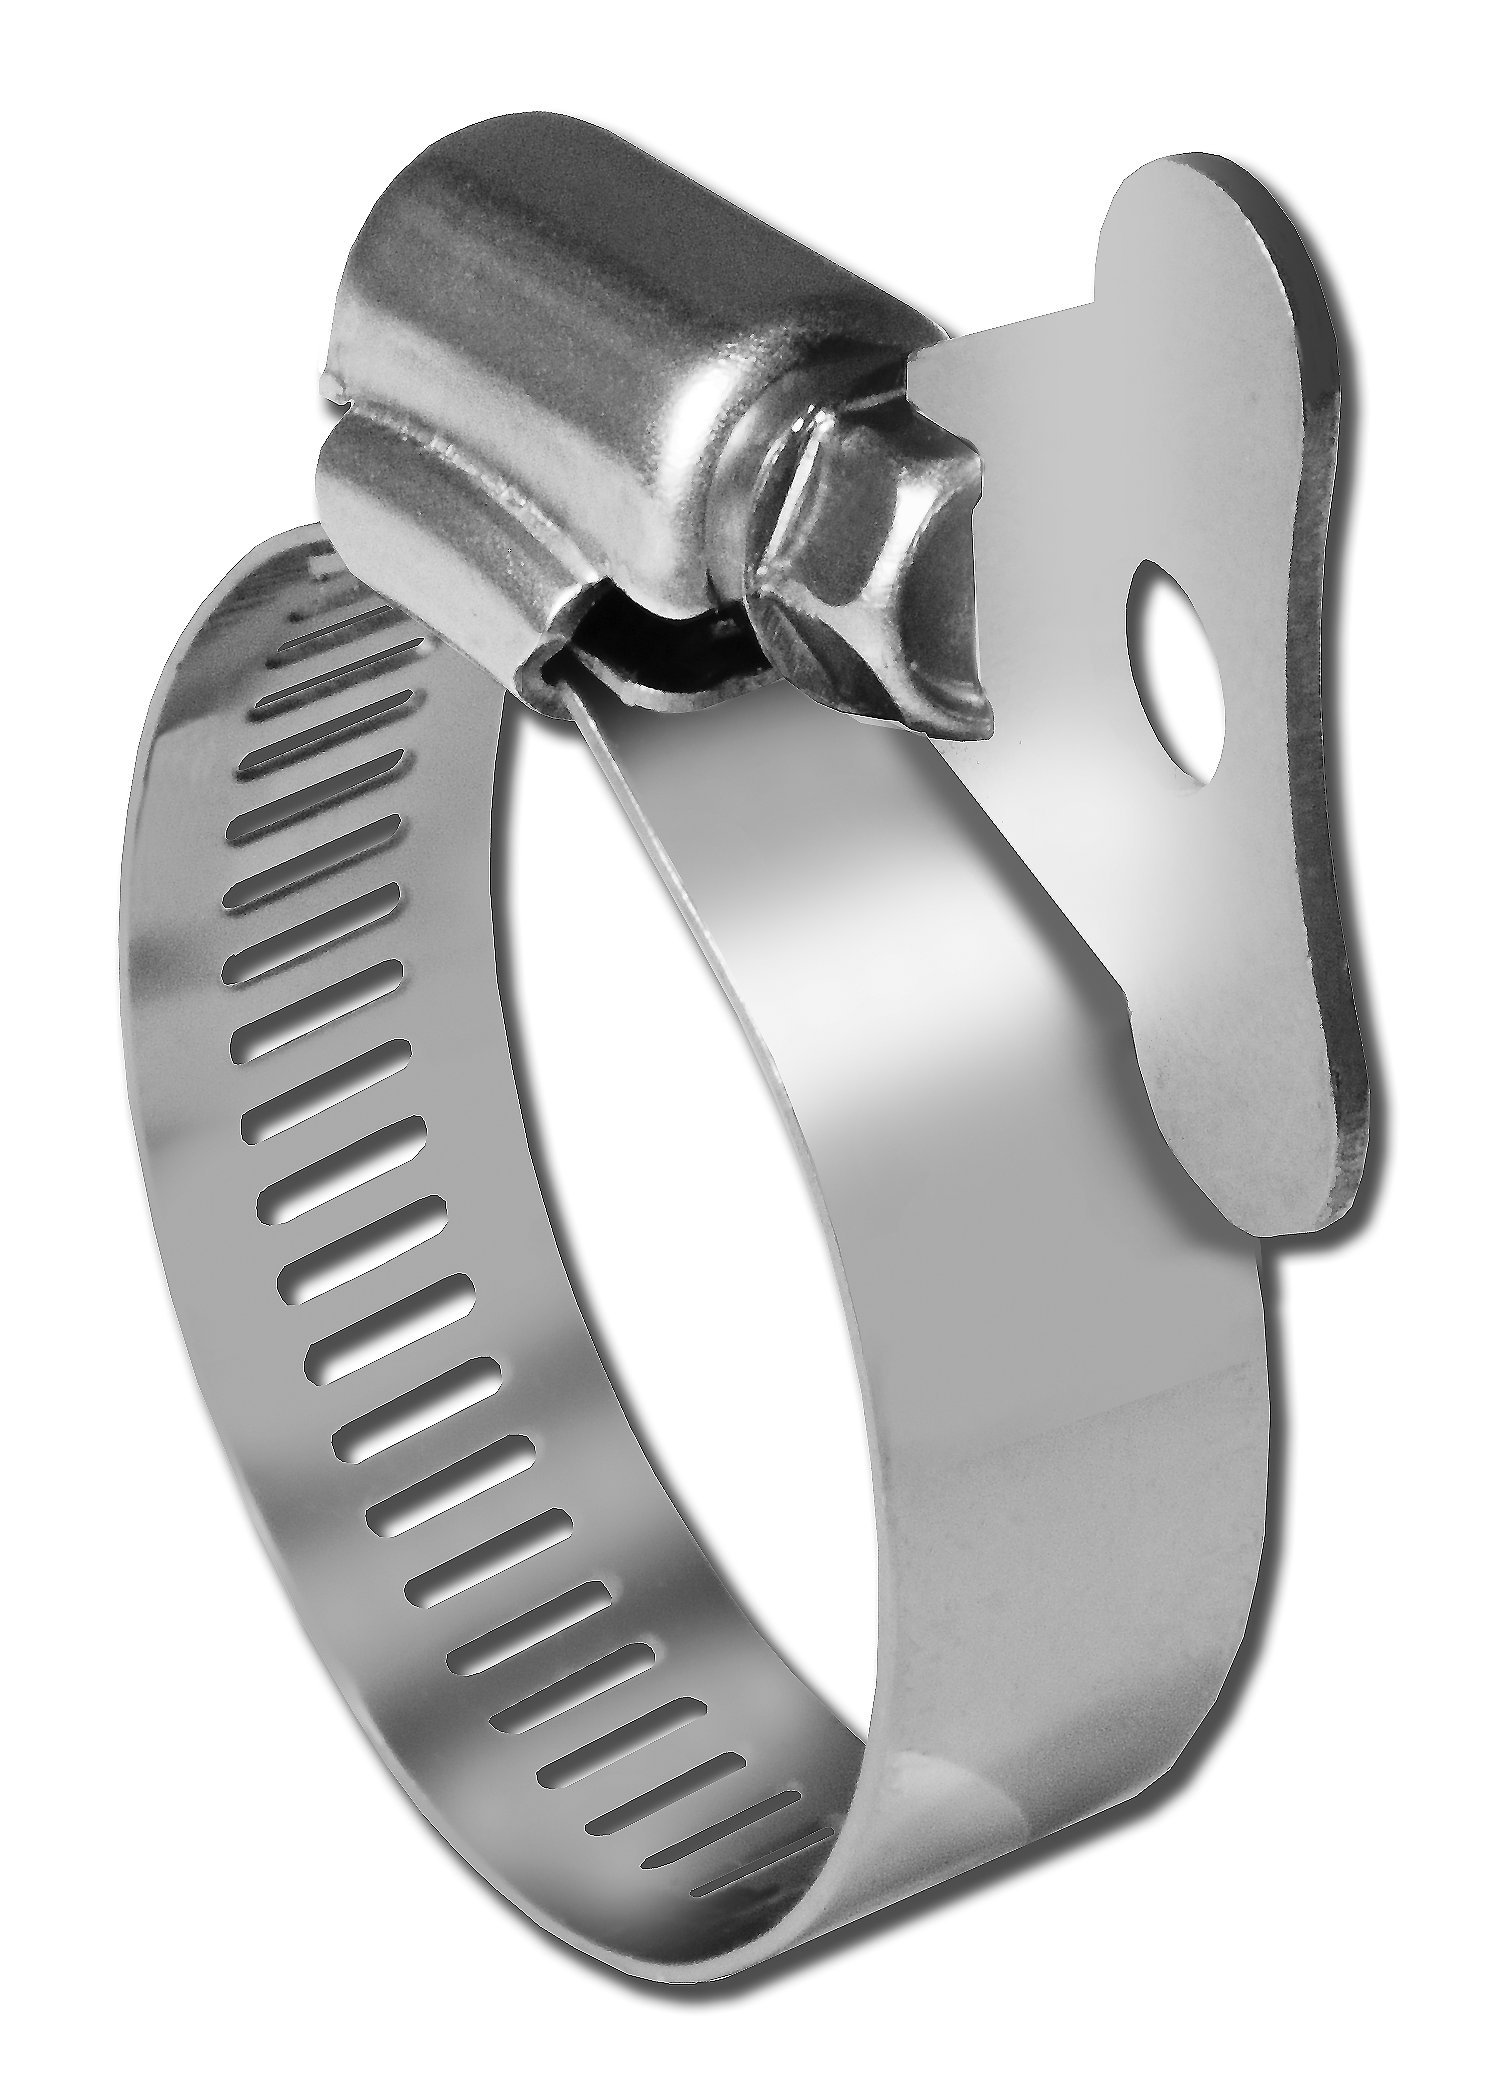 Pro Tie 33101 SAE Size 12 Range 5/8-Inch-1-1/4-Inch SS Turn Key All Stainless Hose Clamp, 10-Pack